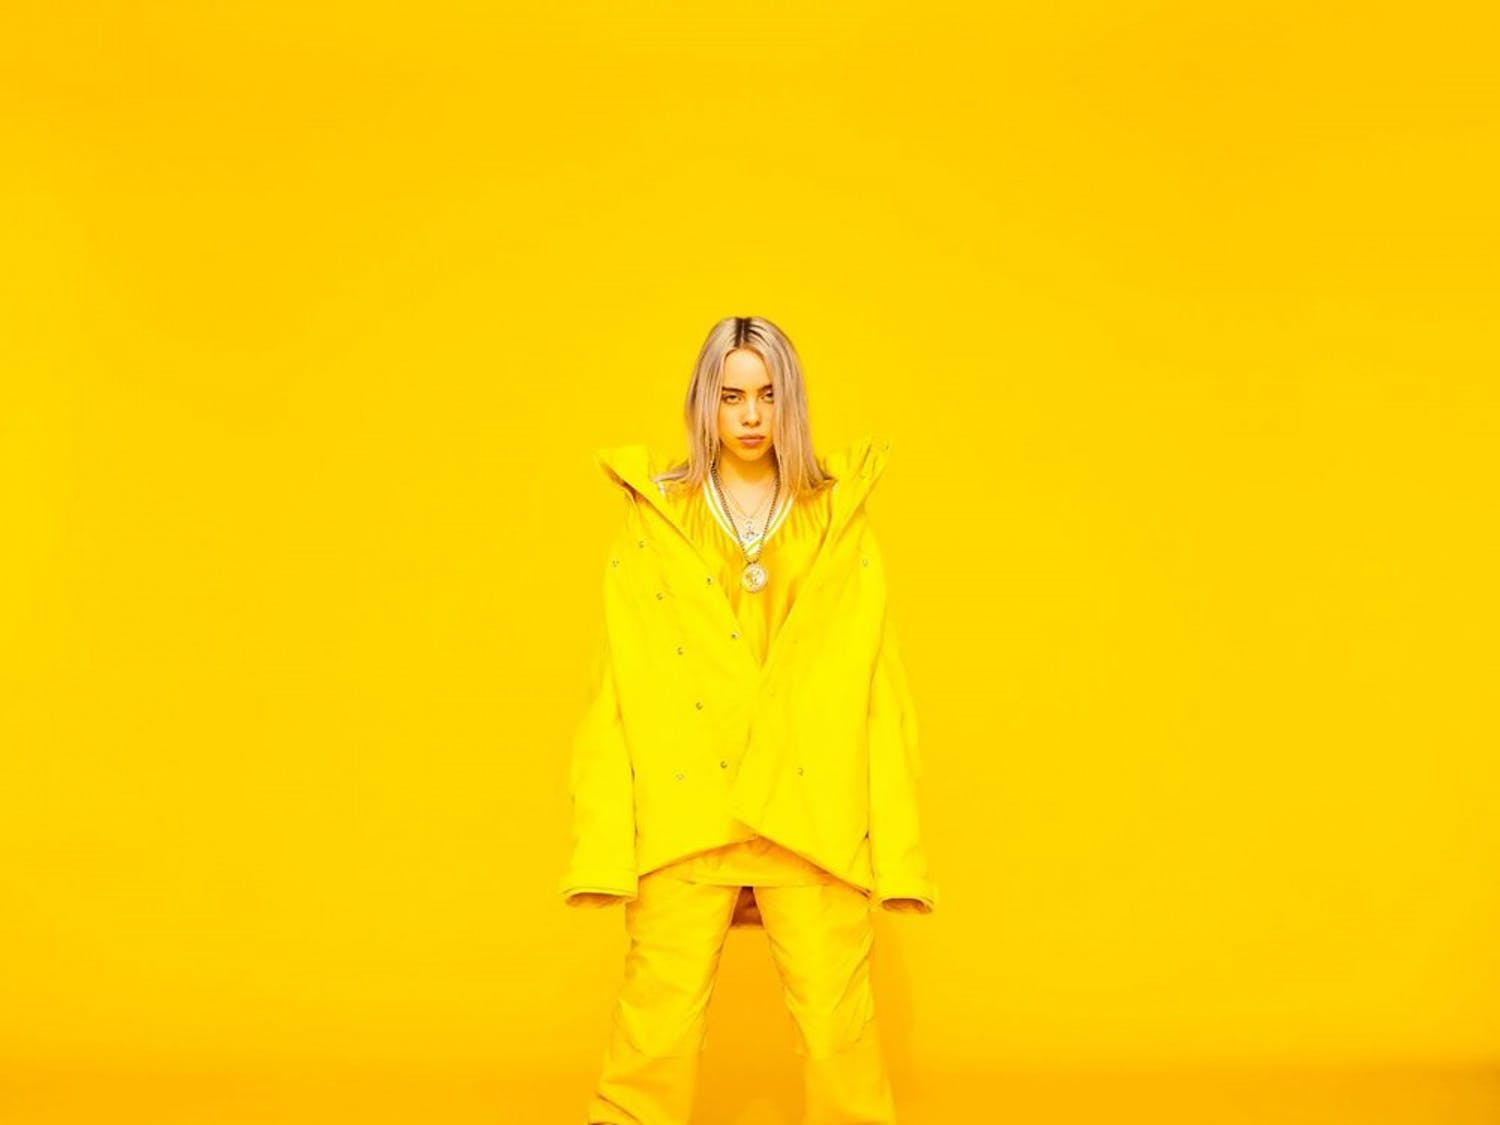 Pop star Billie Eilish is shaking the music industry at just 16-years-old. Eilish talked with The Spectrum in preparation of her upcoming debut album and current U.S. tour.